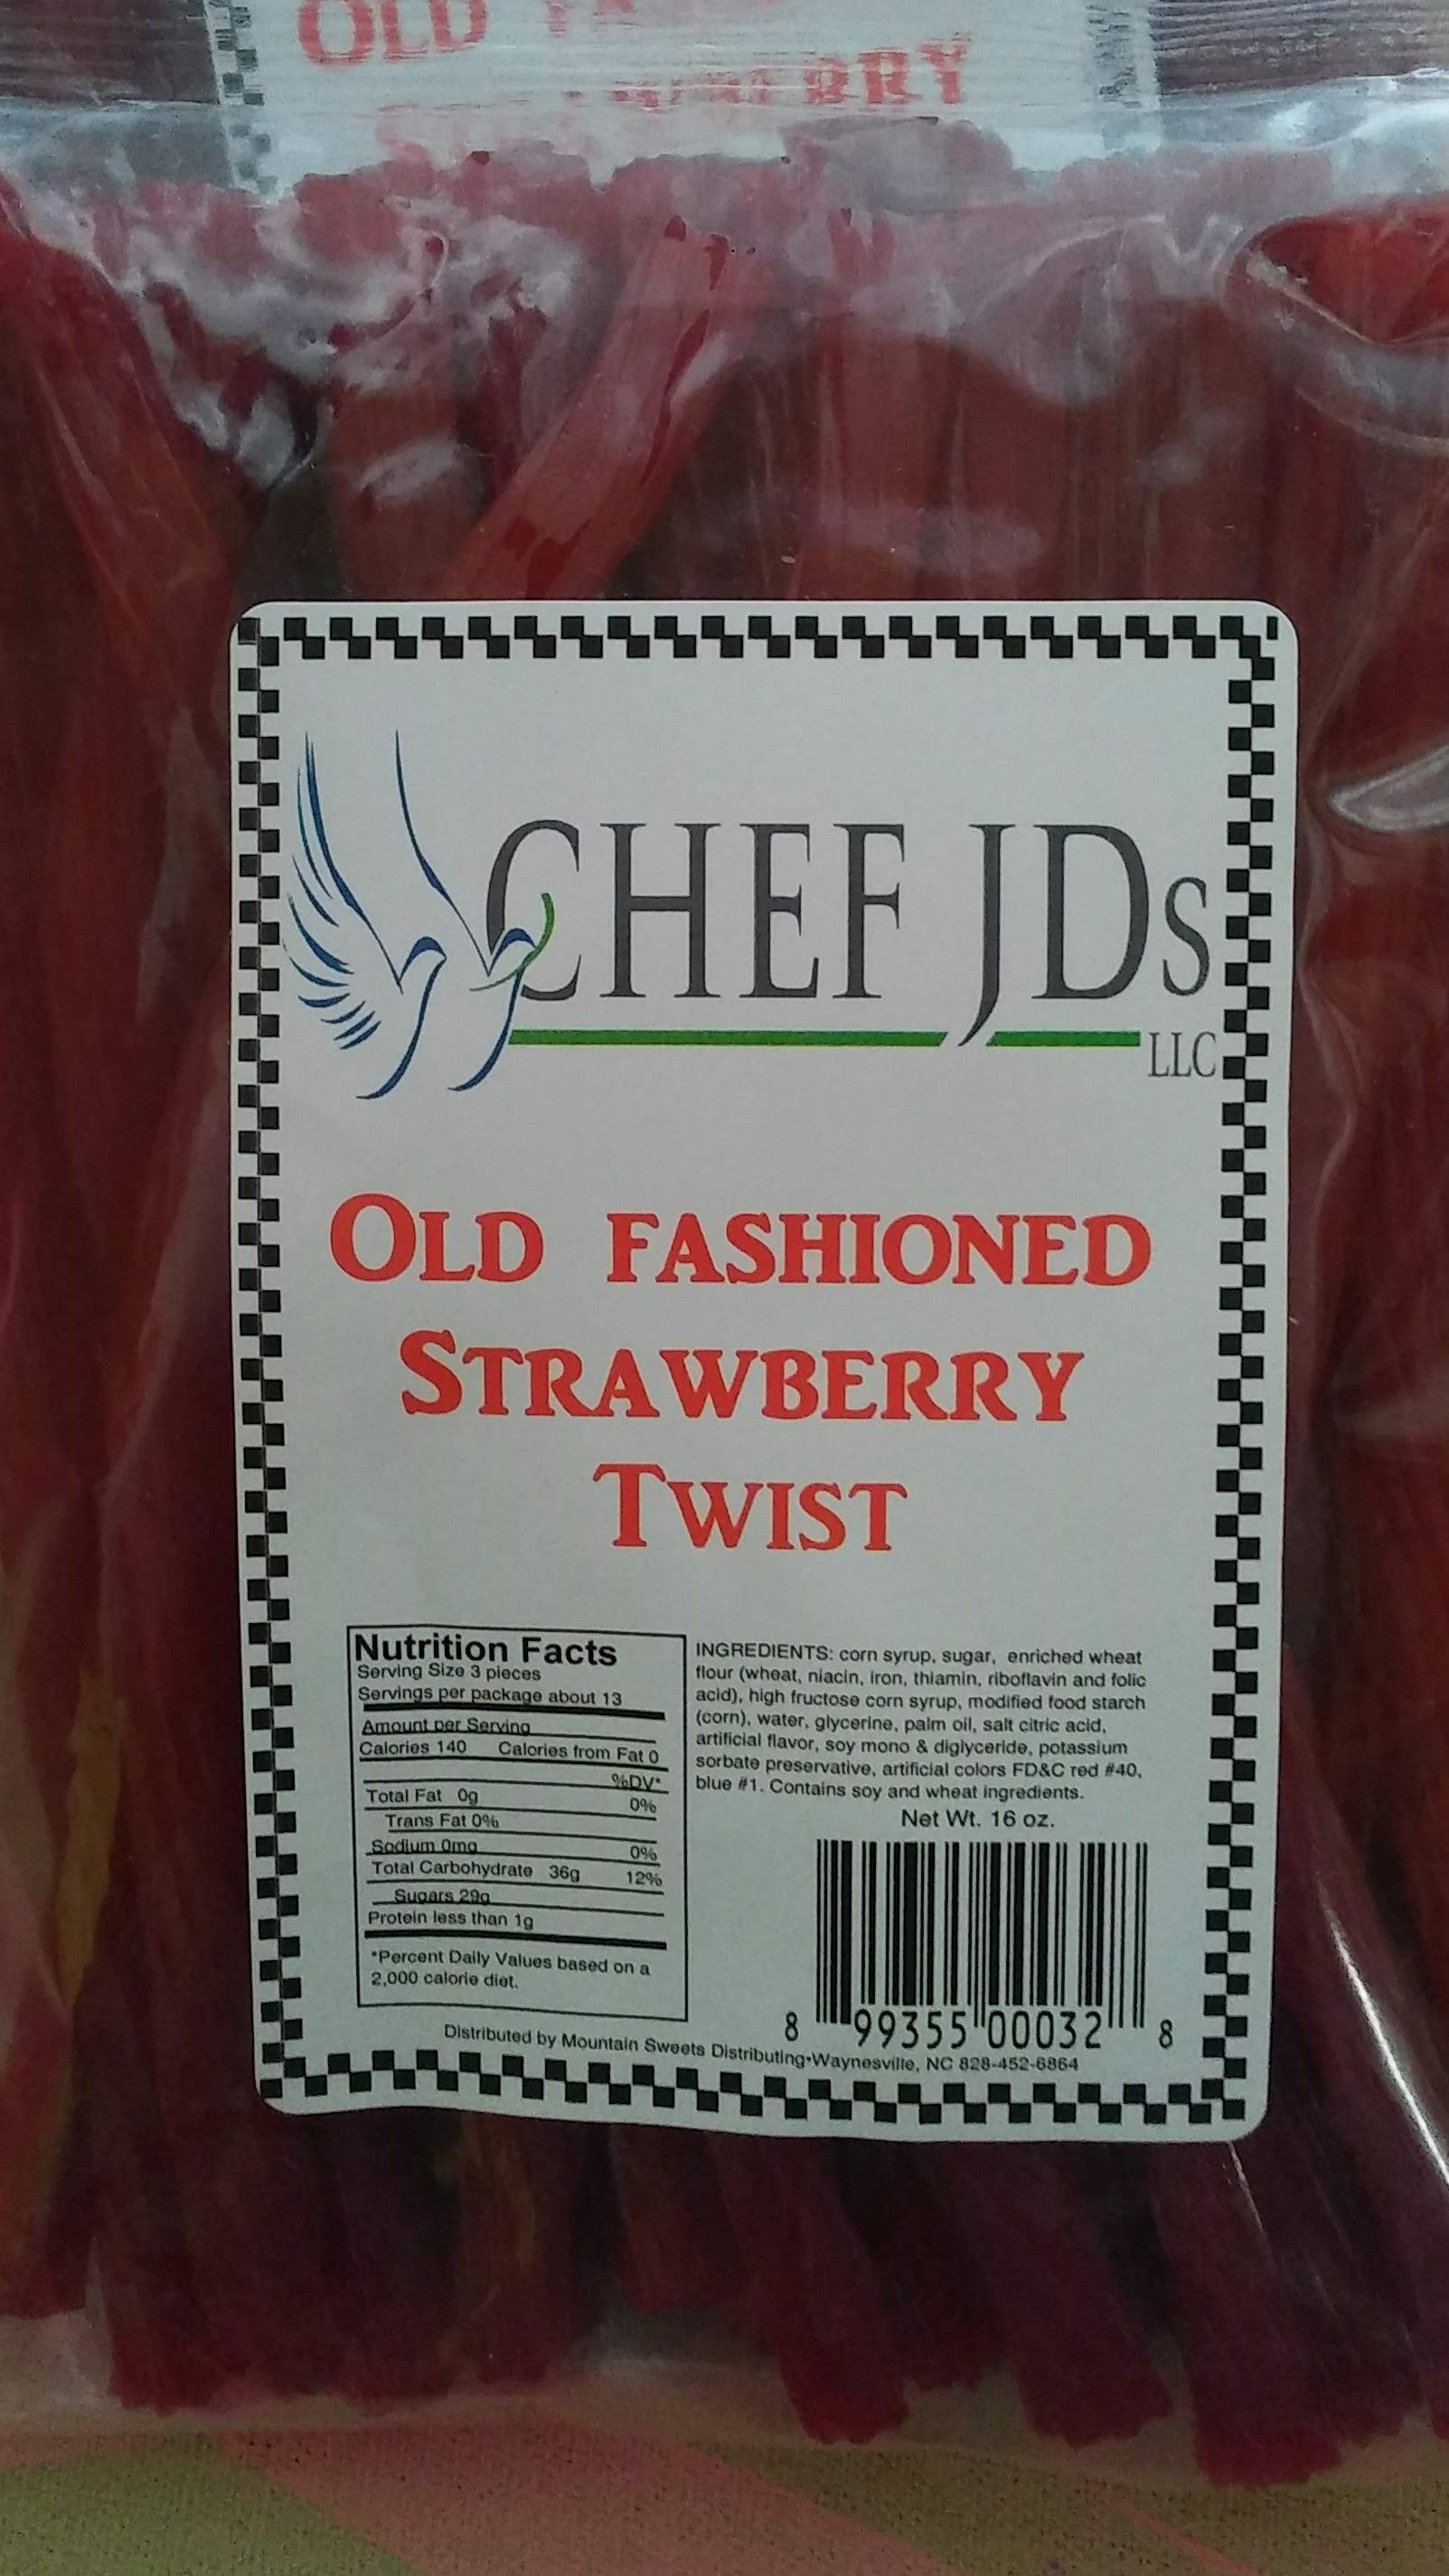 Old Fashion Strawberry Twists